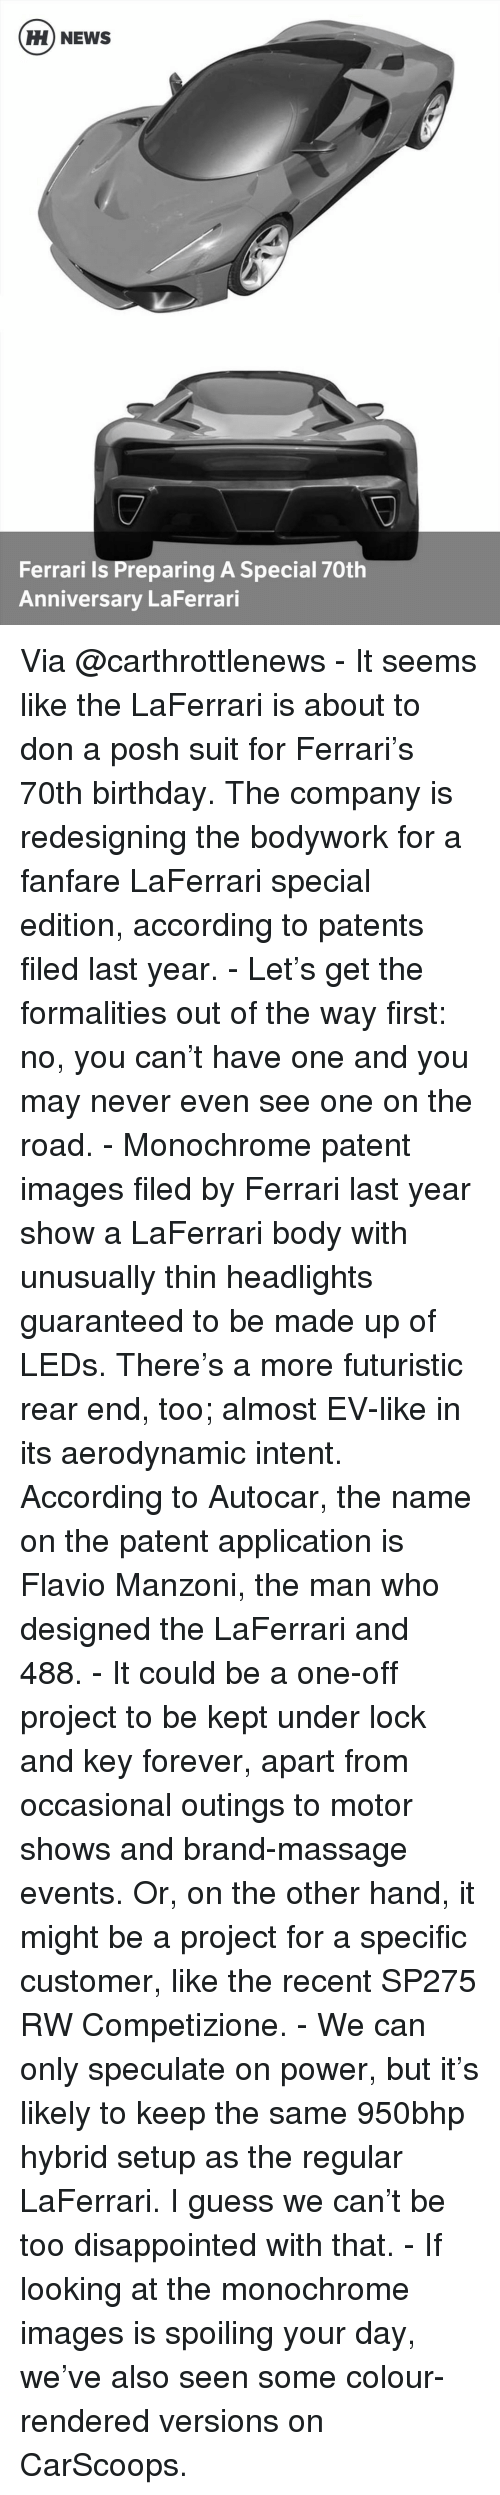 accordance: HH NEWS  Ferrari is Preparing A Special 70th  Anniversary LaFerrari Via @carthrottlenews - It seems like the LaFerrari is about to don a posh suit for Ferrari's 70th birthday. The company is redesigning the bodywork for a fanfare LaFerrari special edition, according to patents filed last year. - Let's get the formalities out of the way first: no, you can't have one and you may never even see one on the road. - Monochrome patent images filed by Ferrari last year show a LaFerrari body with unusually thin headlights guaranteed to be made up of LEDs. There's a more futuristic rear end, too; almost EV-like in its aerodynamic intent. According to Autocar, the name on the patent application is Flavio Manzoni, the man who designed the LaFerrari and 488. - It could be a one-off project to be kept under lock and key forever, apart from occasional outings to motor shows and brand-massage events. Or, on the other hand, it might be a project for a specific customer, like the recent SP275 RW Competizione. - We can only speculate on power, but it's likely to keep the same 950bhp hybrid setup as the regular LaFerrari. I guess we can't be too disappointed with that. - If looking at the monochrome images is spoiling your day, we've also seen some colour-rendered versions on CarScoops.